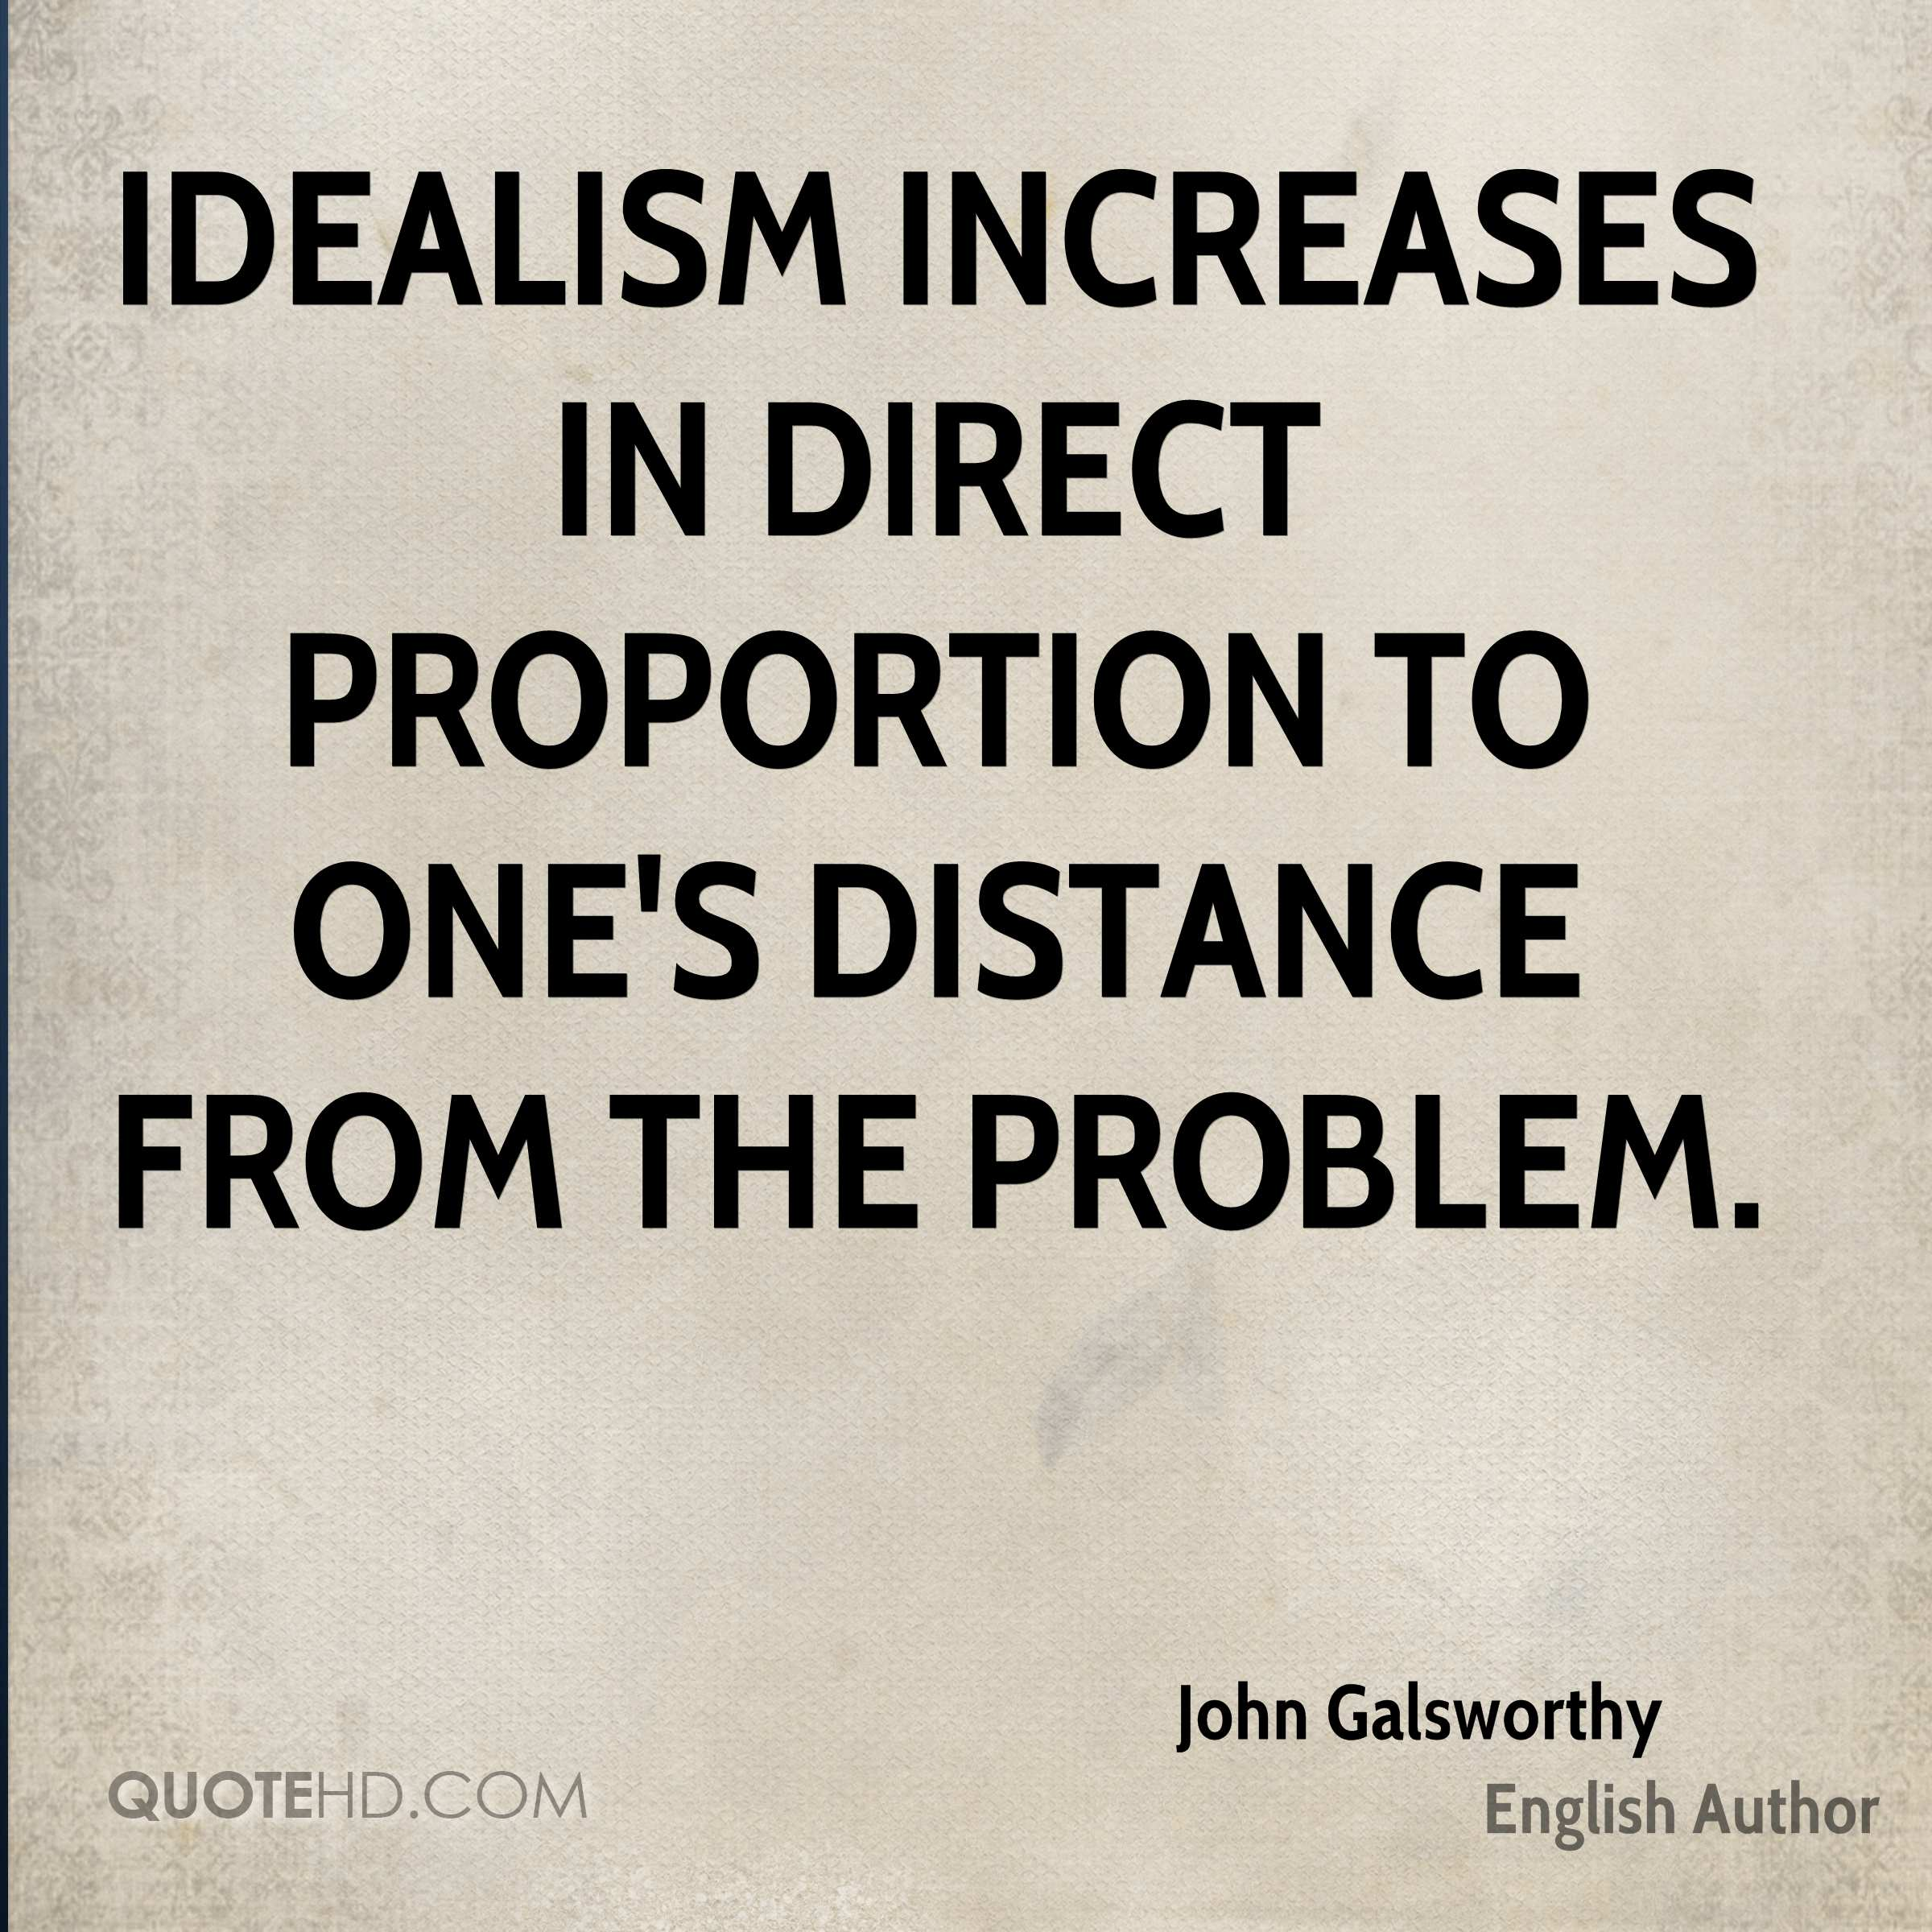 Idealism increases in direct proportion to one's distance from the problem.